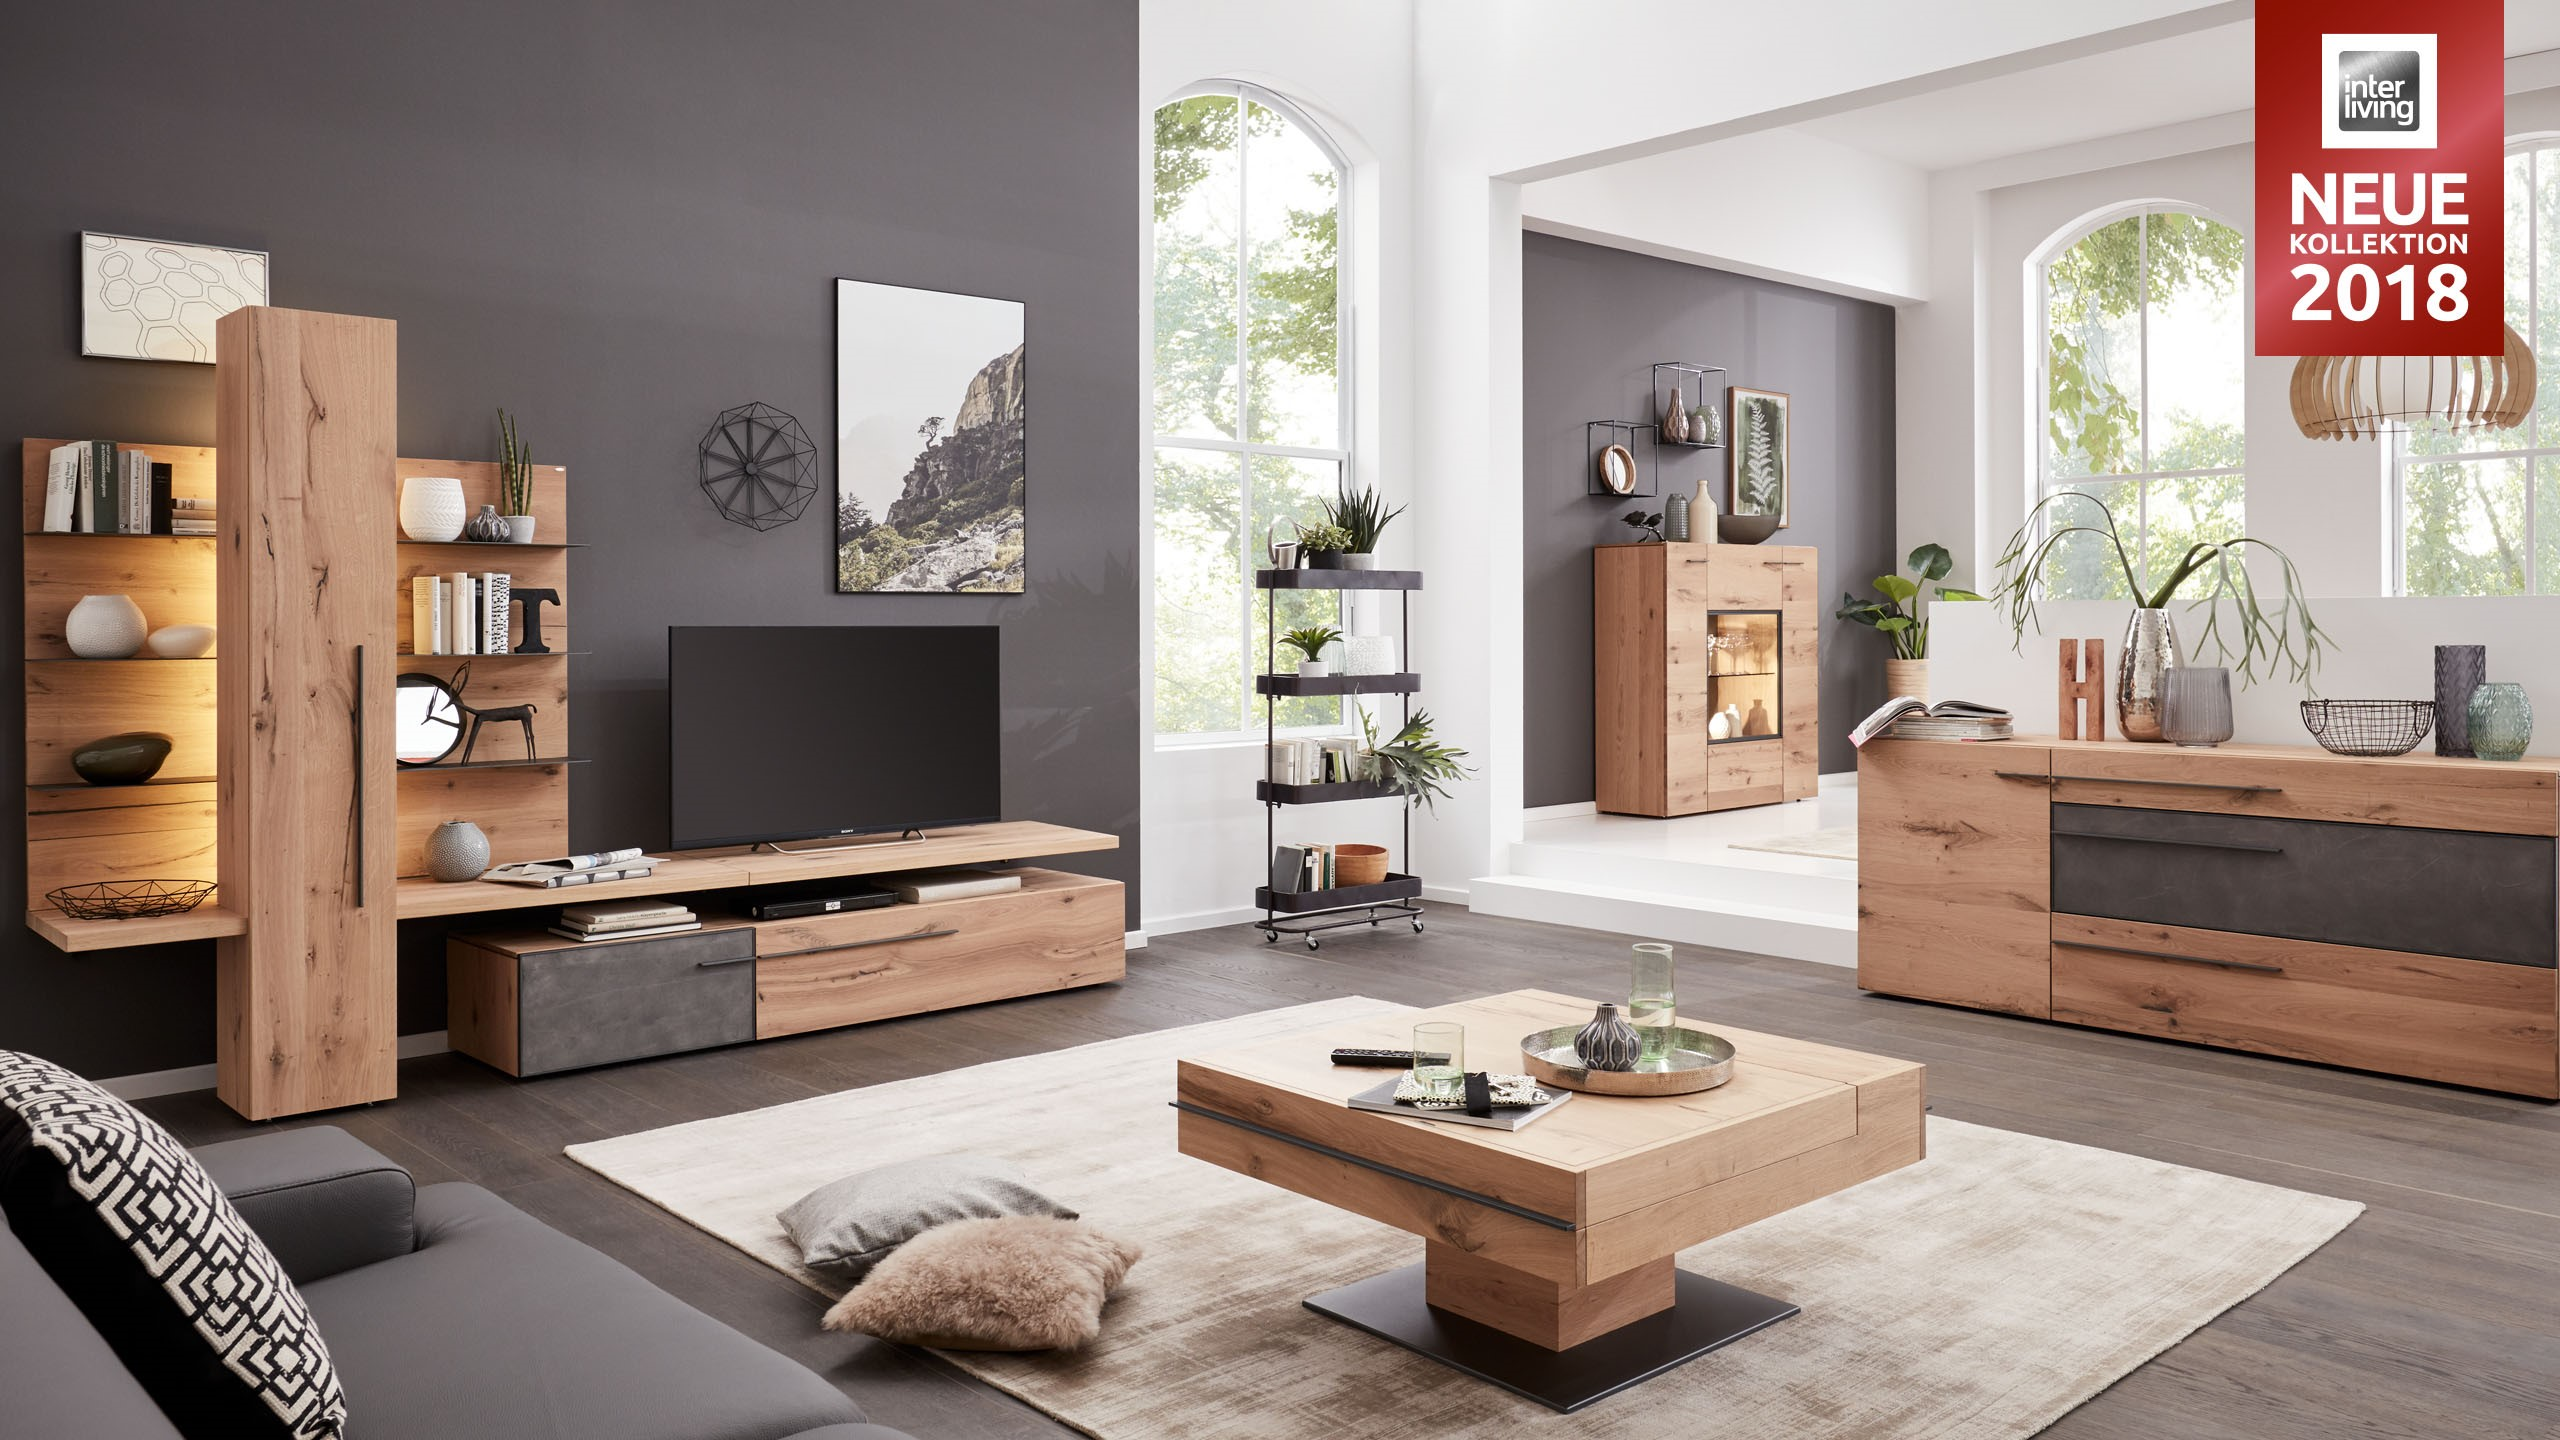 wohnzimmer archive interliving m bel f r mich gemacht. Black Bedroom Furniture Sets. Home Design Ideas